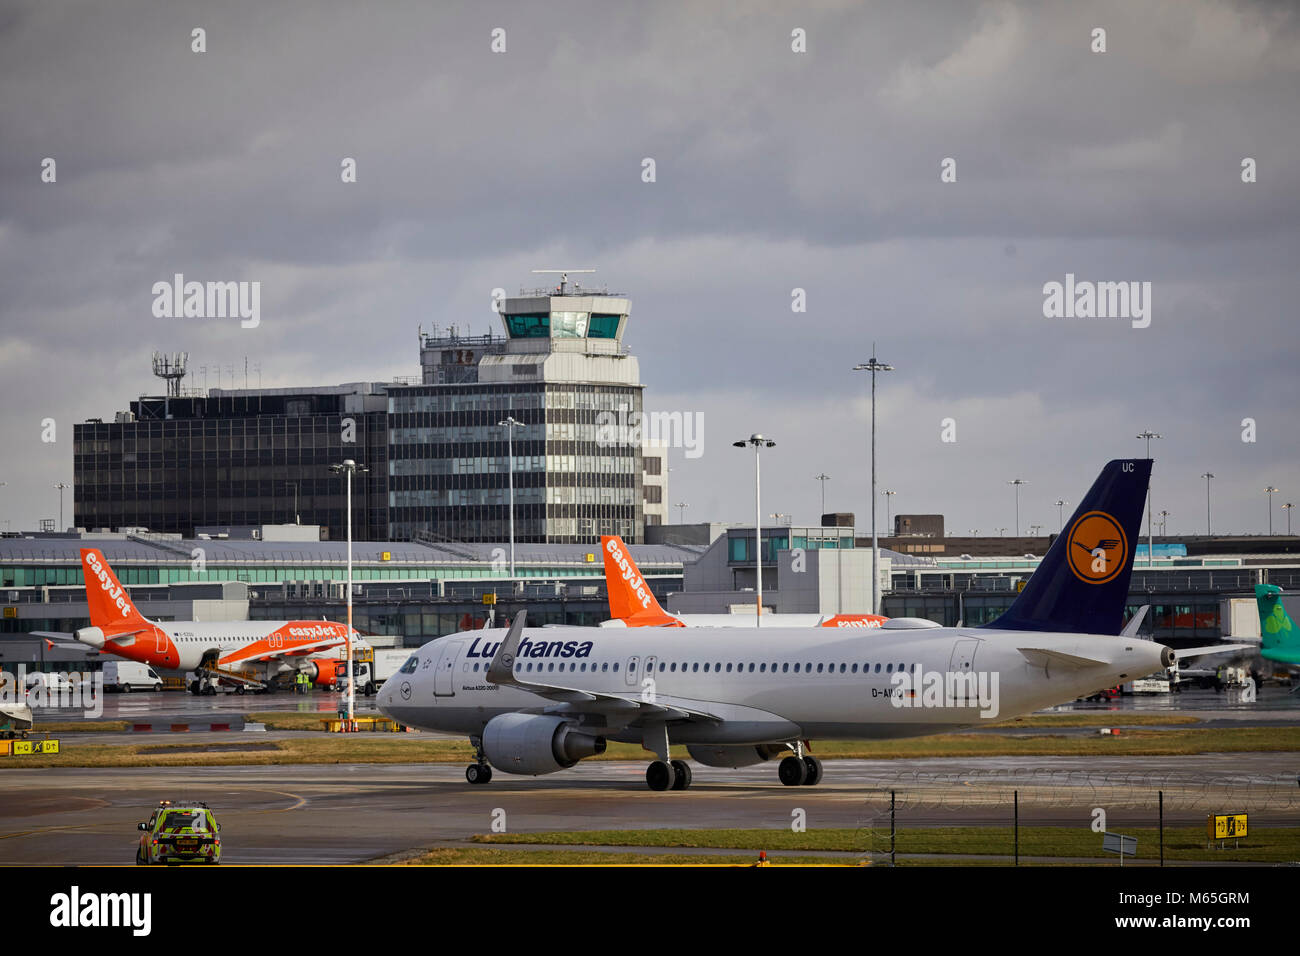 Manchester Airport D-AIUC Lufthansa Airbus A320-214 taxing to the terminal after arriving form Germany - Stock Image